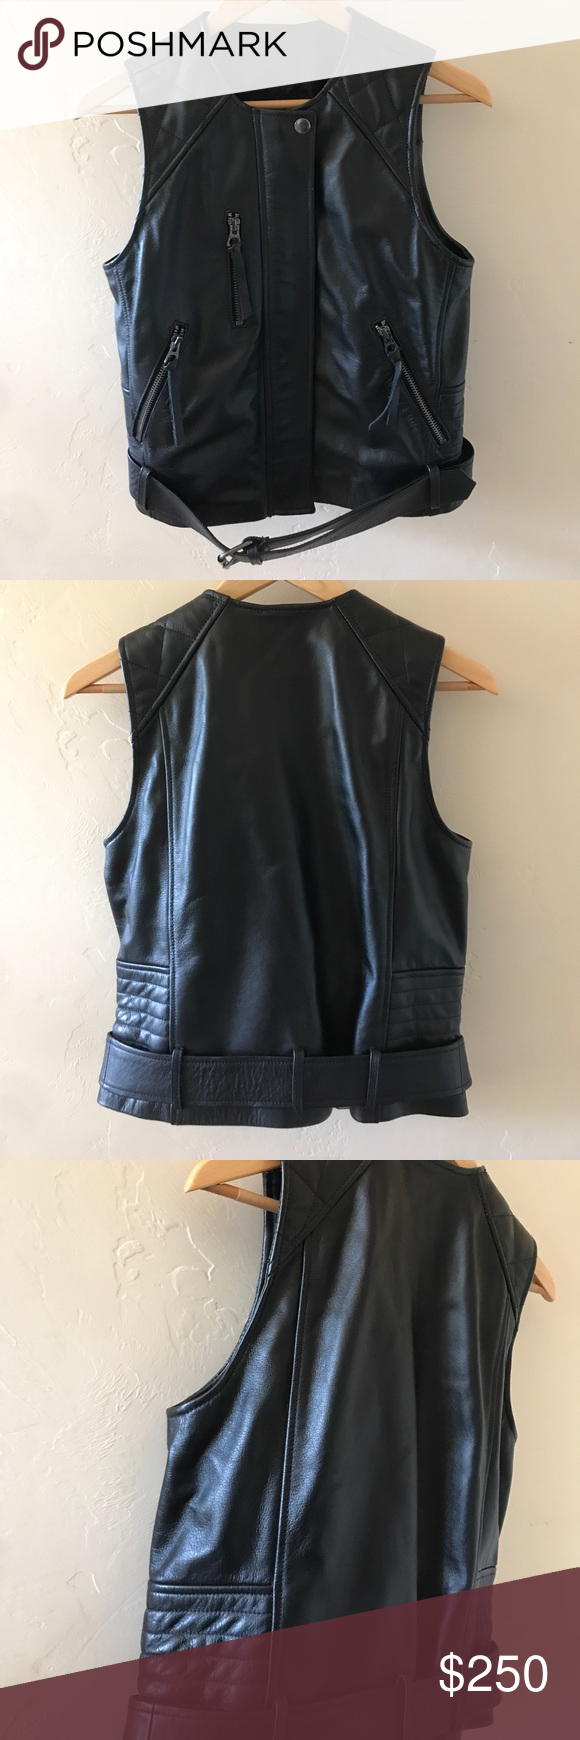 NWT Madewell Leather Ultimate Moto Vest NWT Madewell